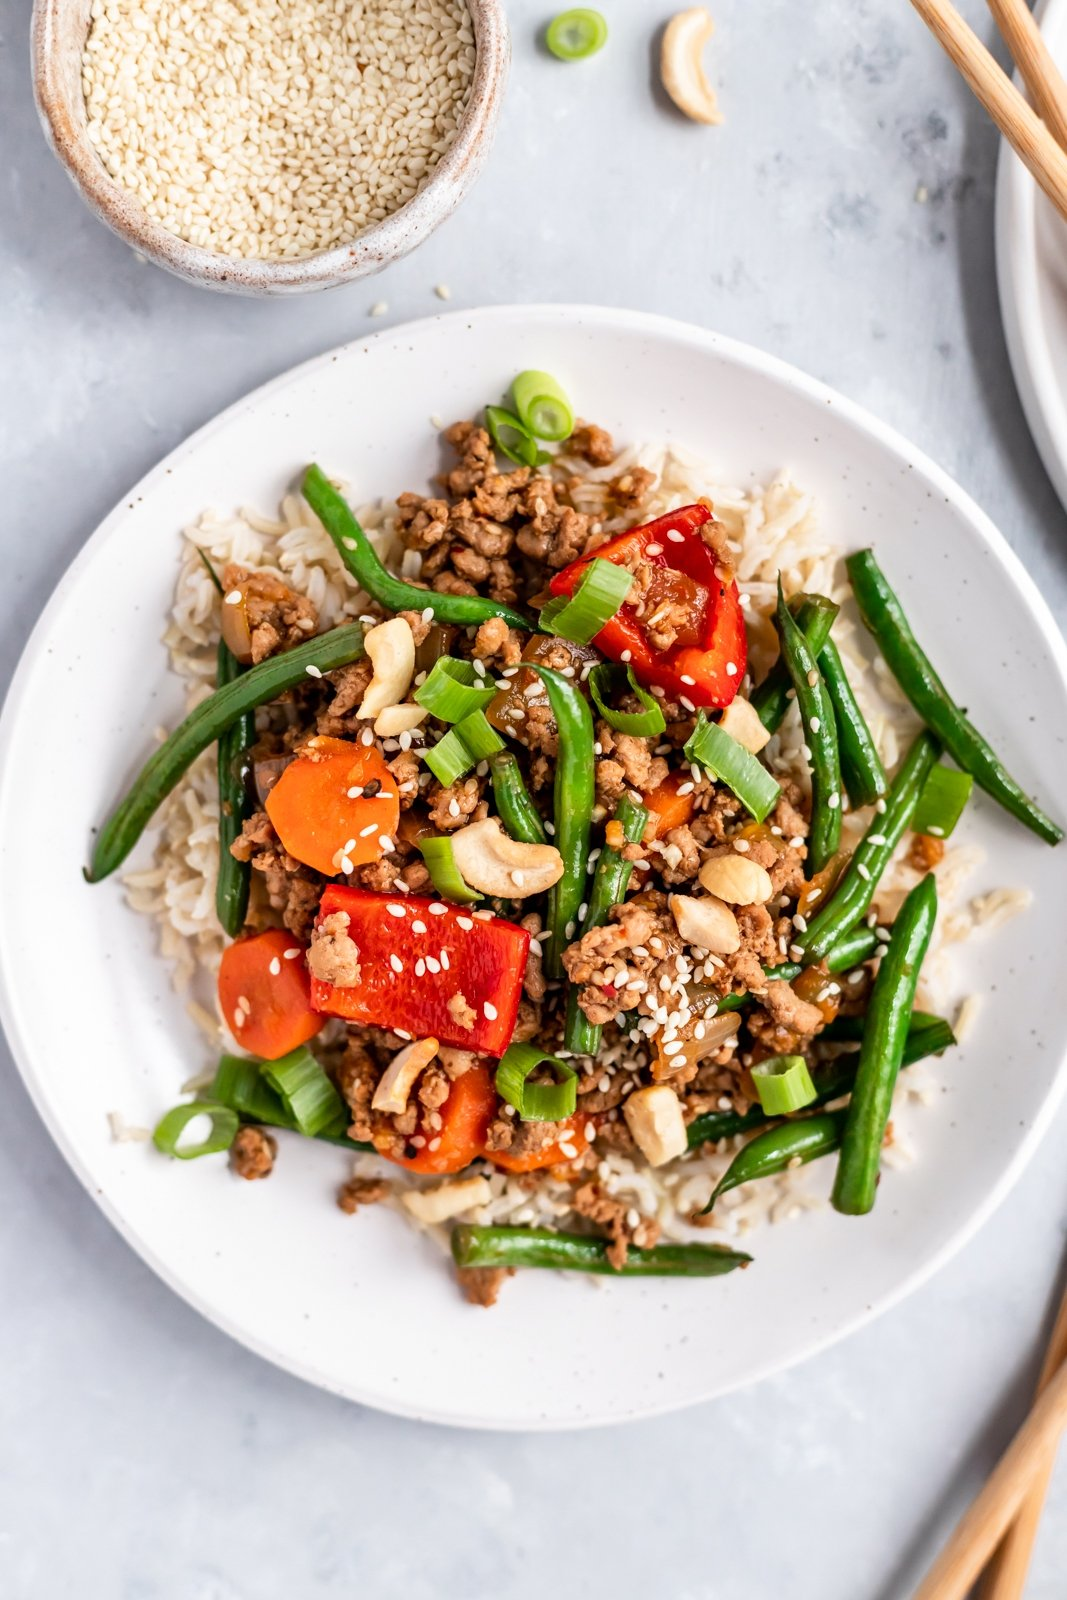 chicken and green beans stir fry on a plate